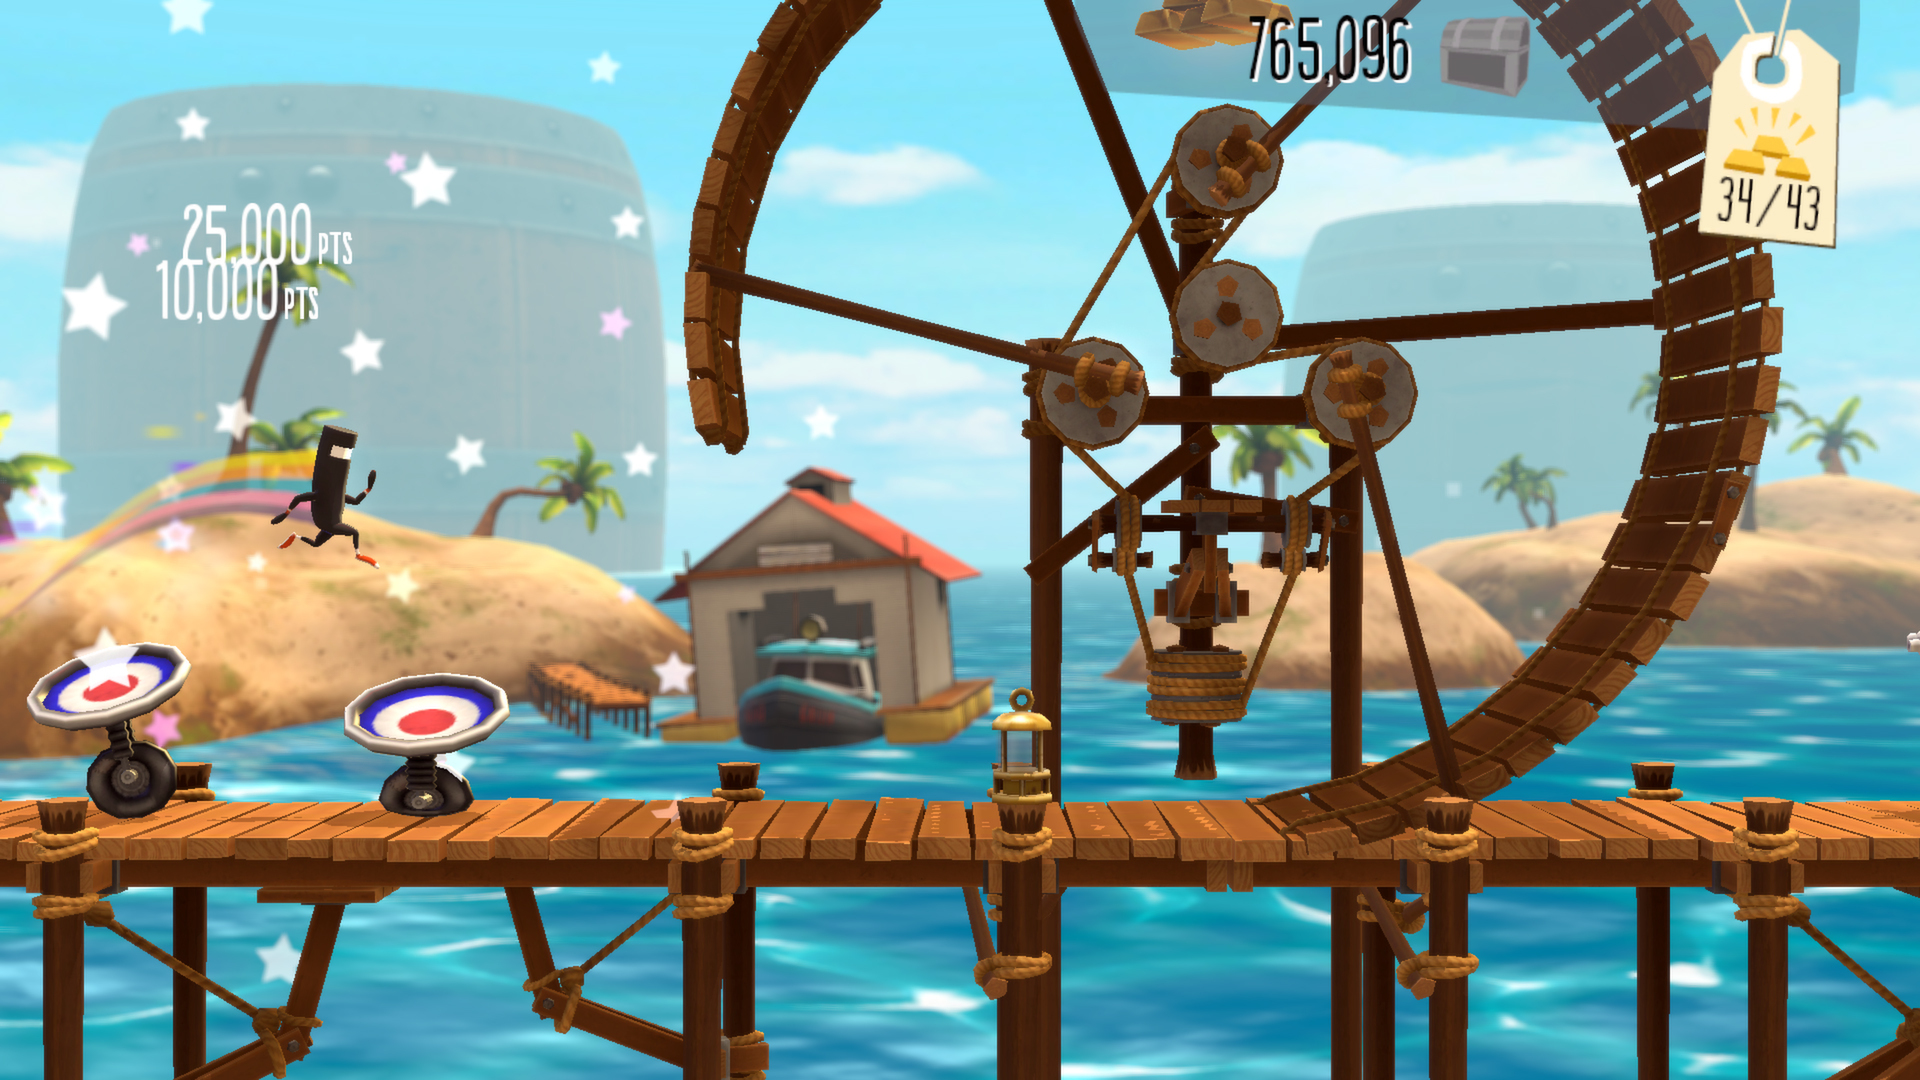 Commander Video will be sprinting, jumping, and jiving onto iOS and Vita soon in Runner 2